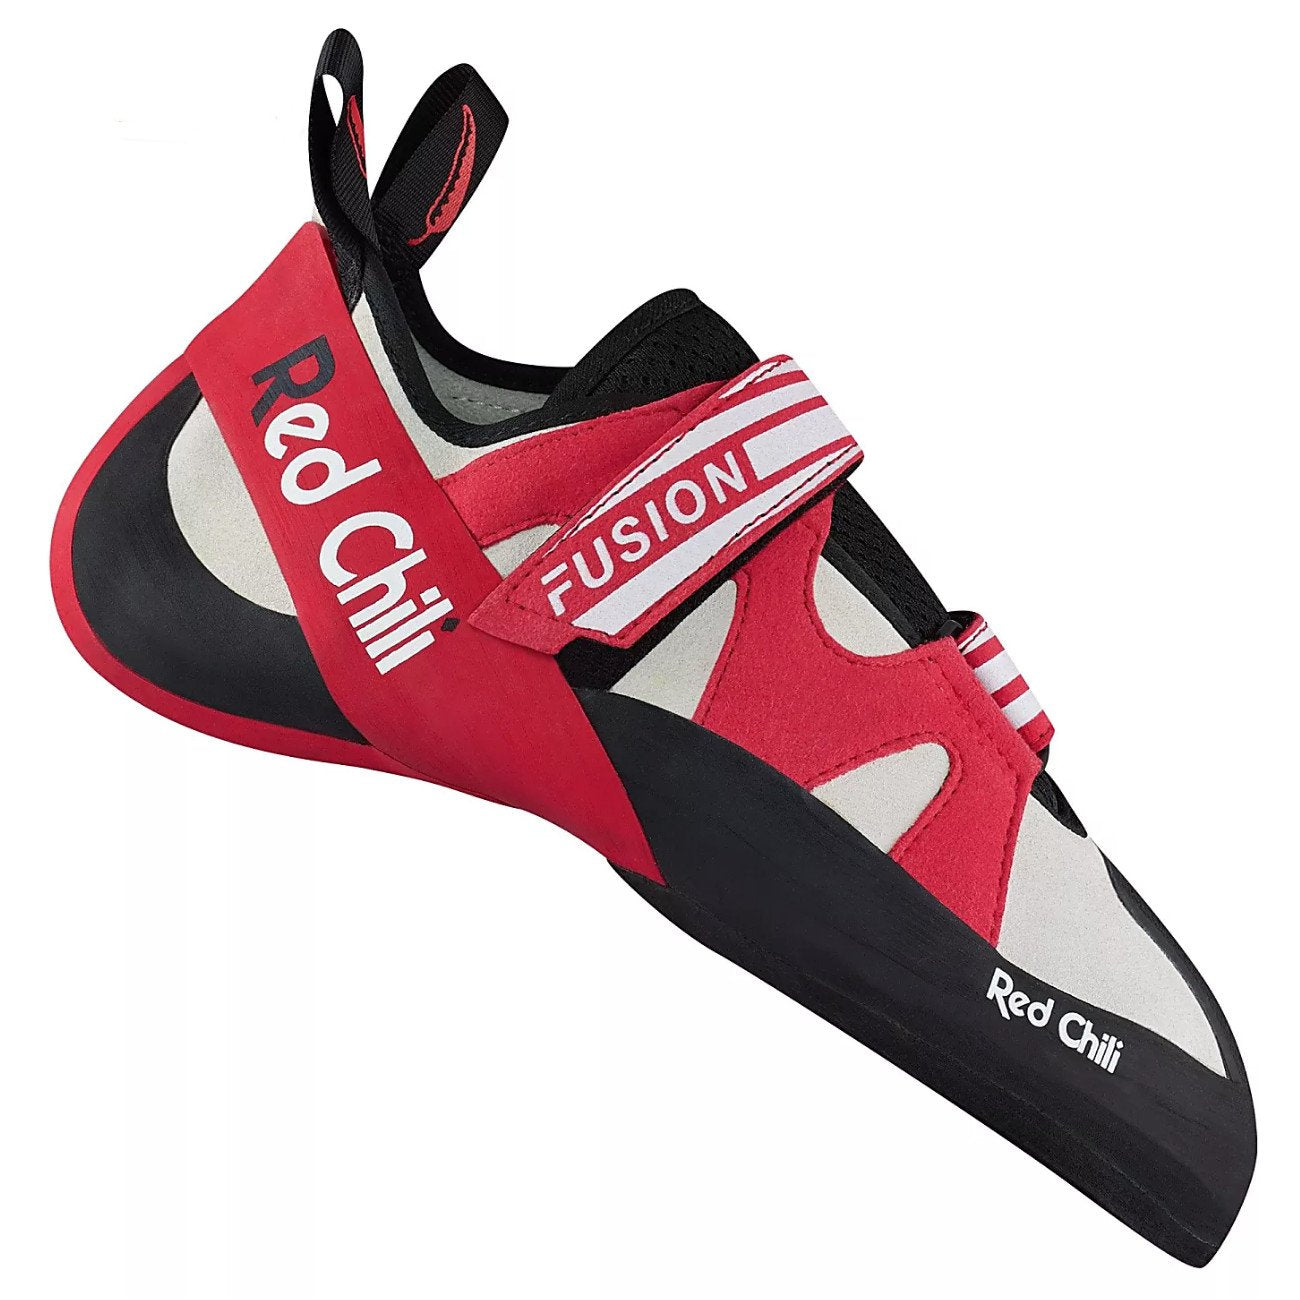 Red Chili Fusion VCR climbing shoe, in black, red and white colours